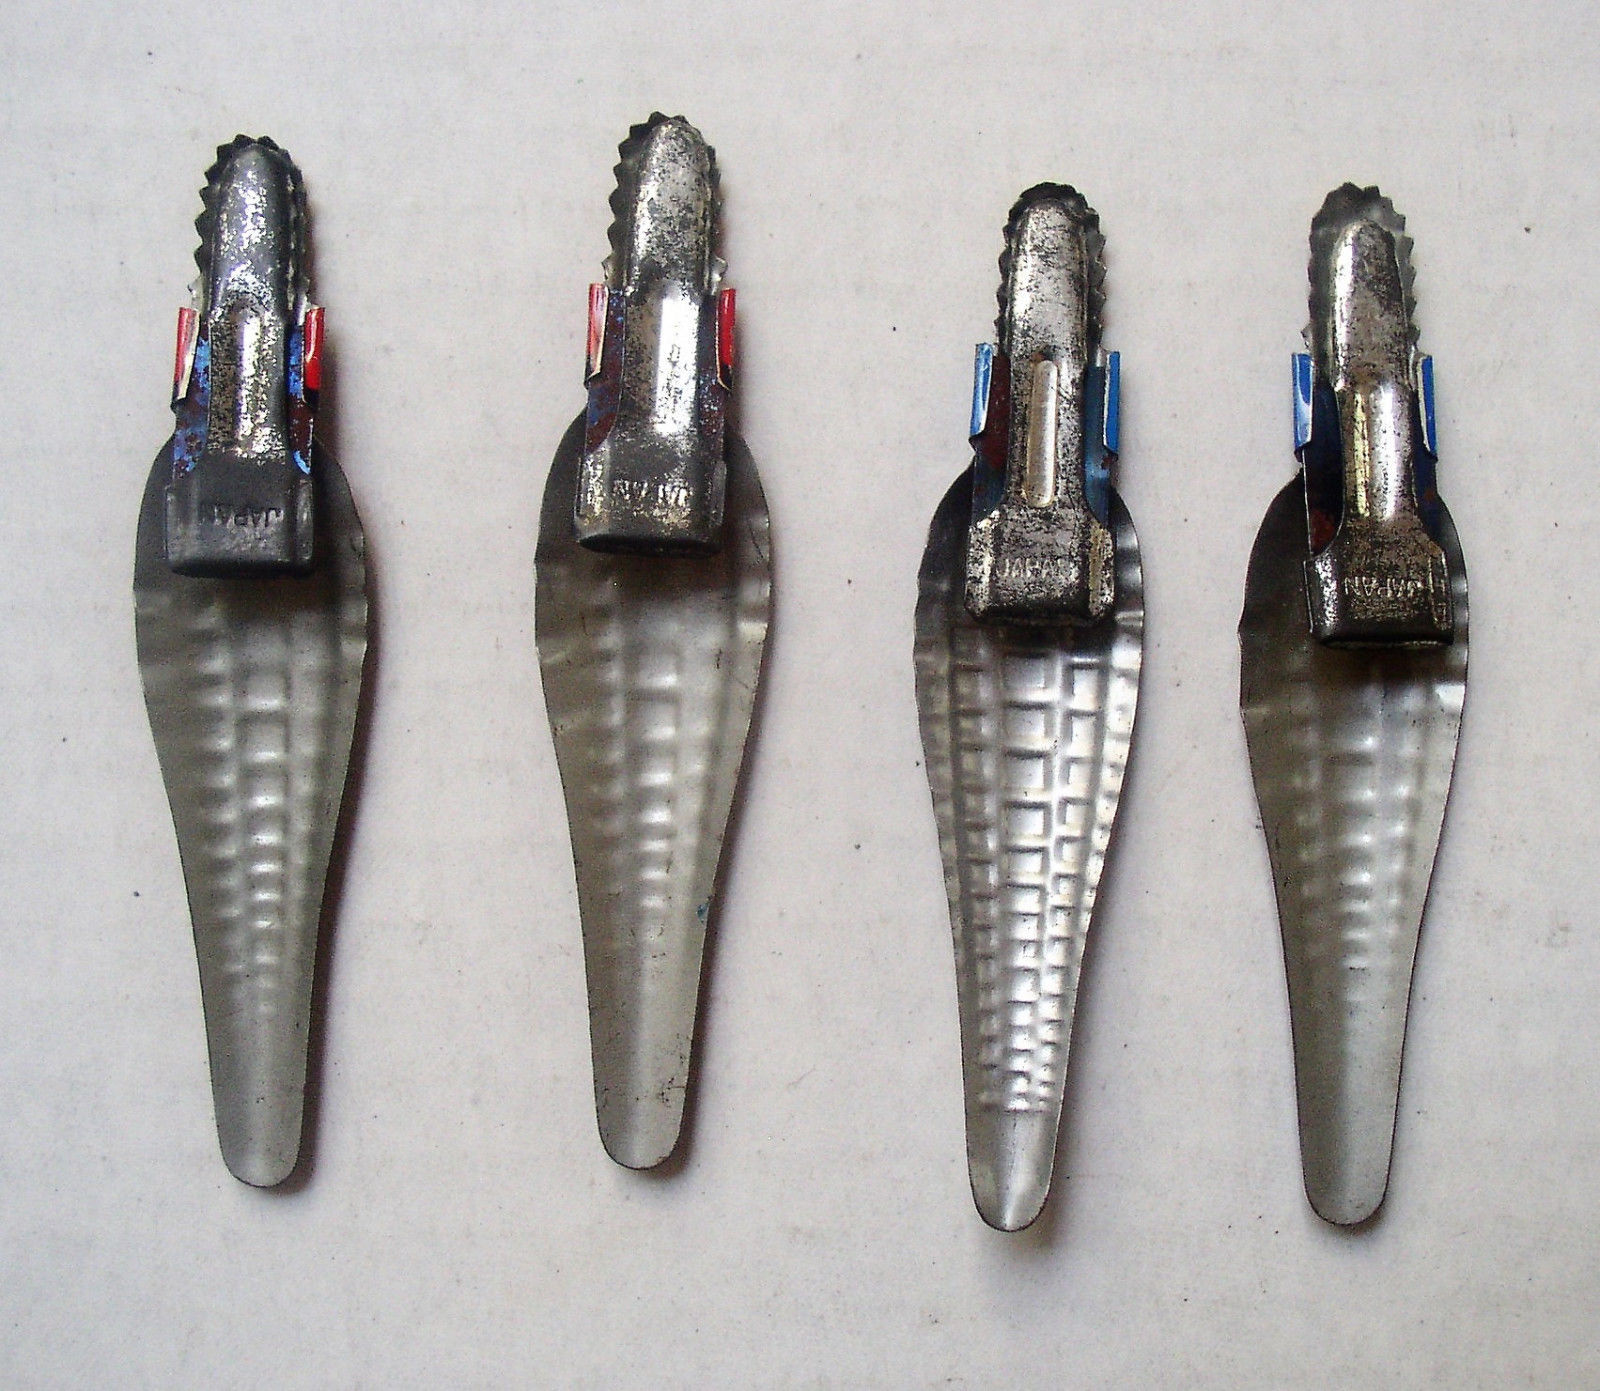 4 Alligator Or Crocodile Japan Tin Litho Clickers Clips early 1960s Vintage